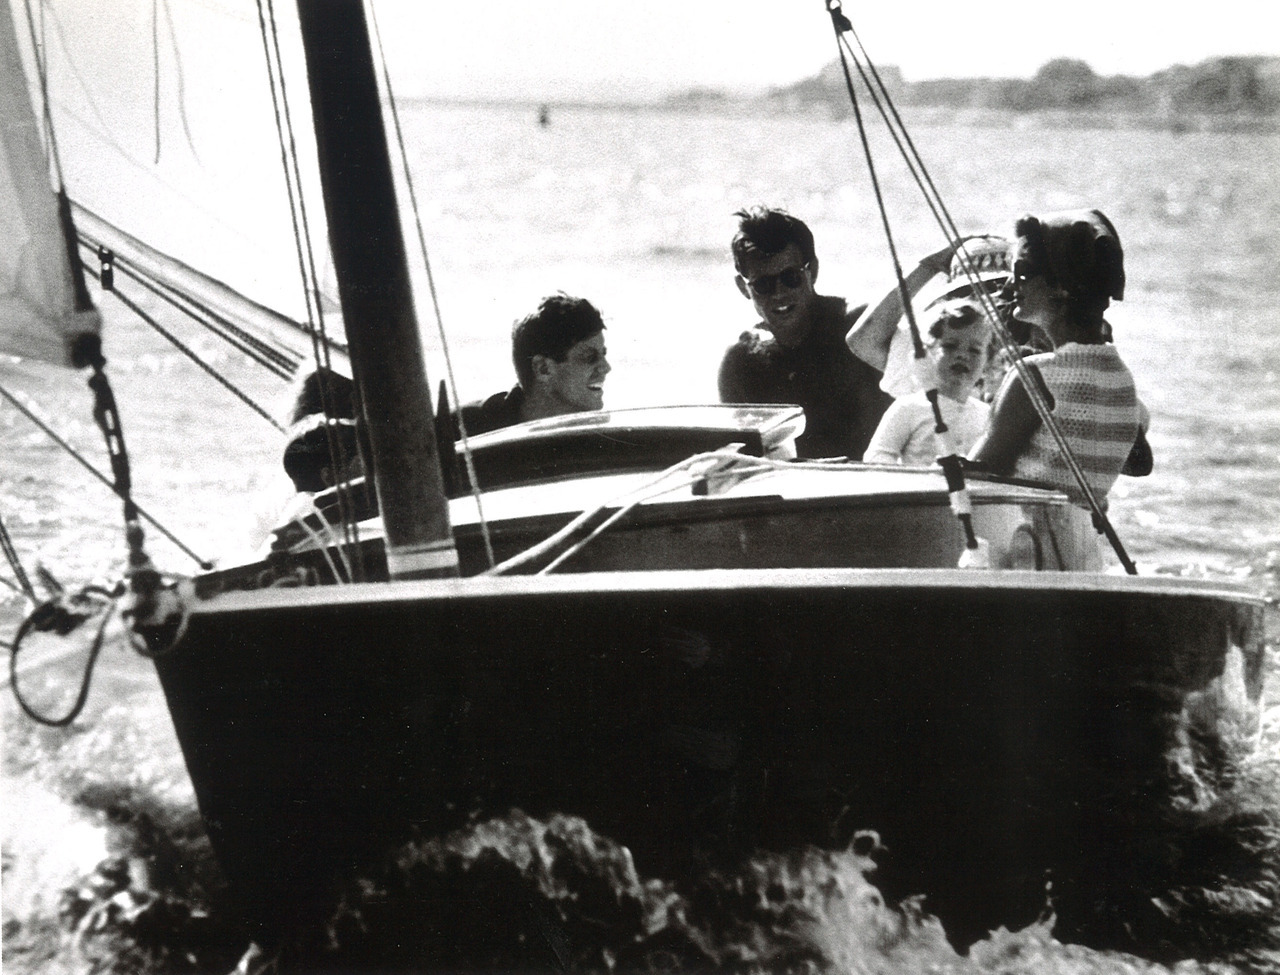 tommyhilfiger:  Senator Kennedy sailing with his family in Hyannis Port, MA. Corbis Sygma Collection